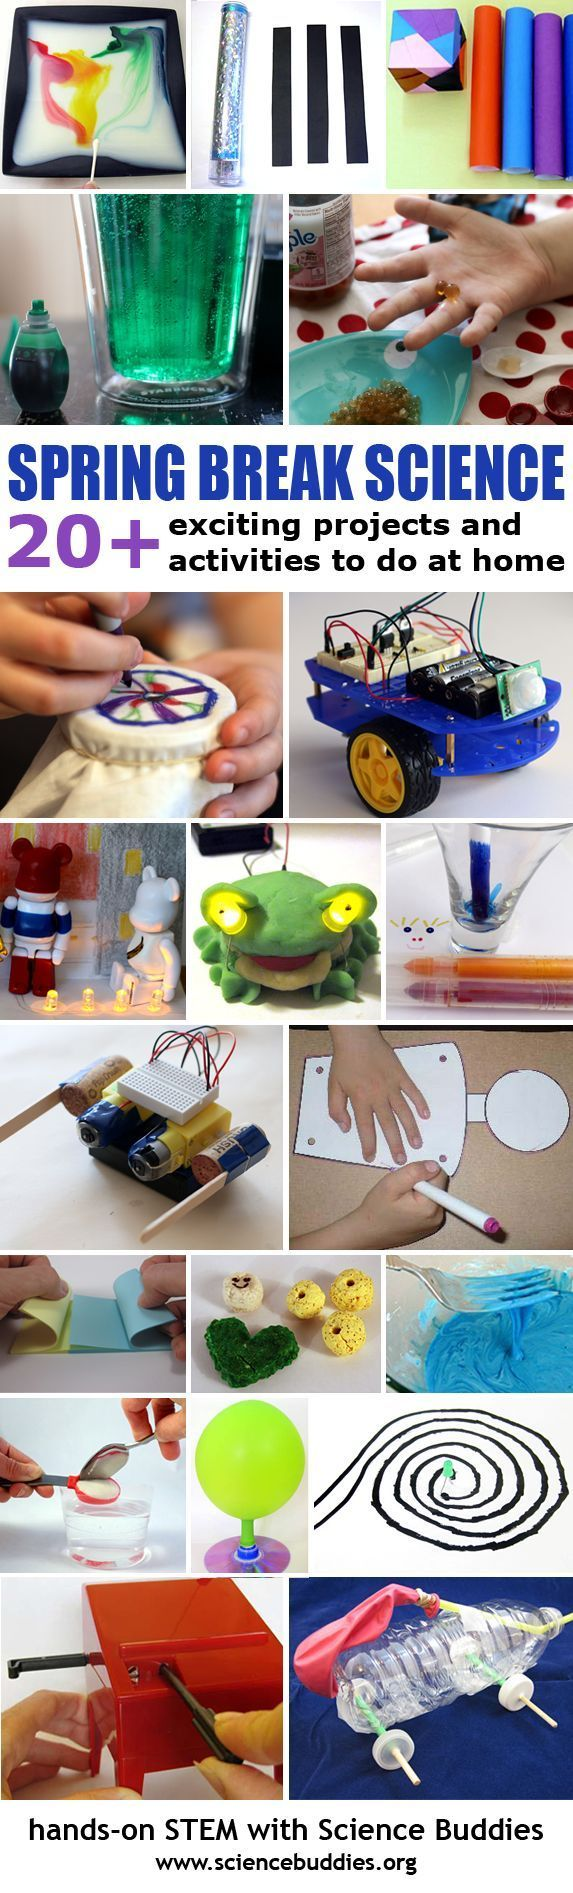 Spring break is coming! Here is a great roundup of over 20 projects and science experiments to keep kids busy during spring break!